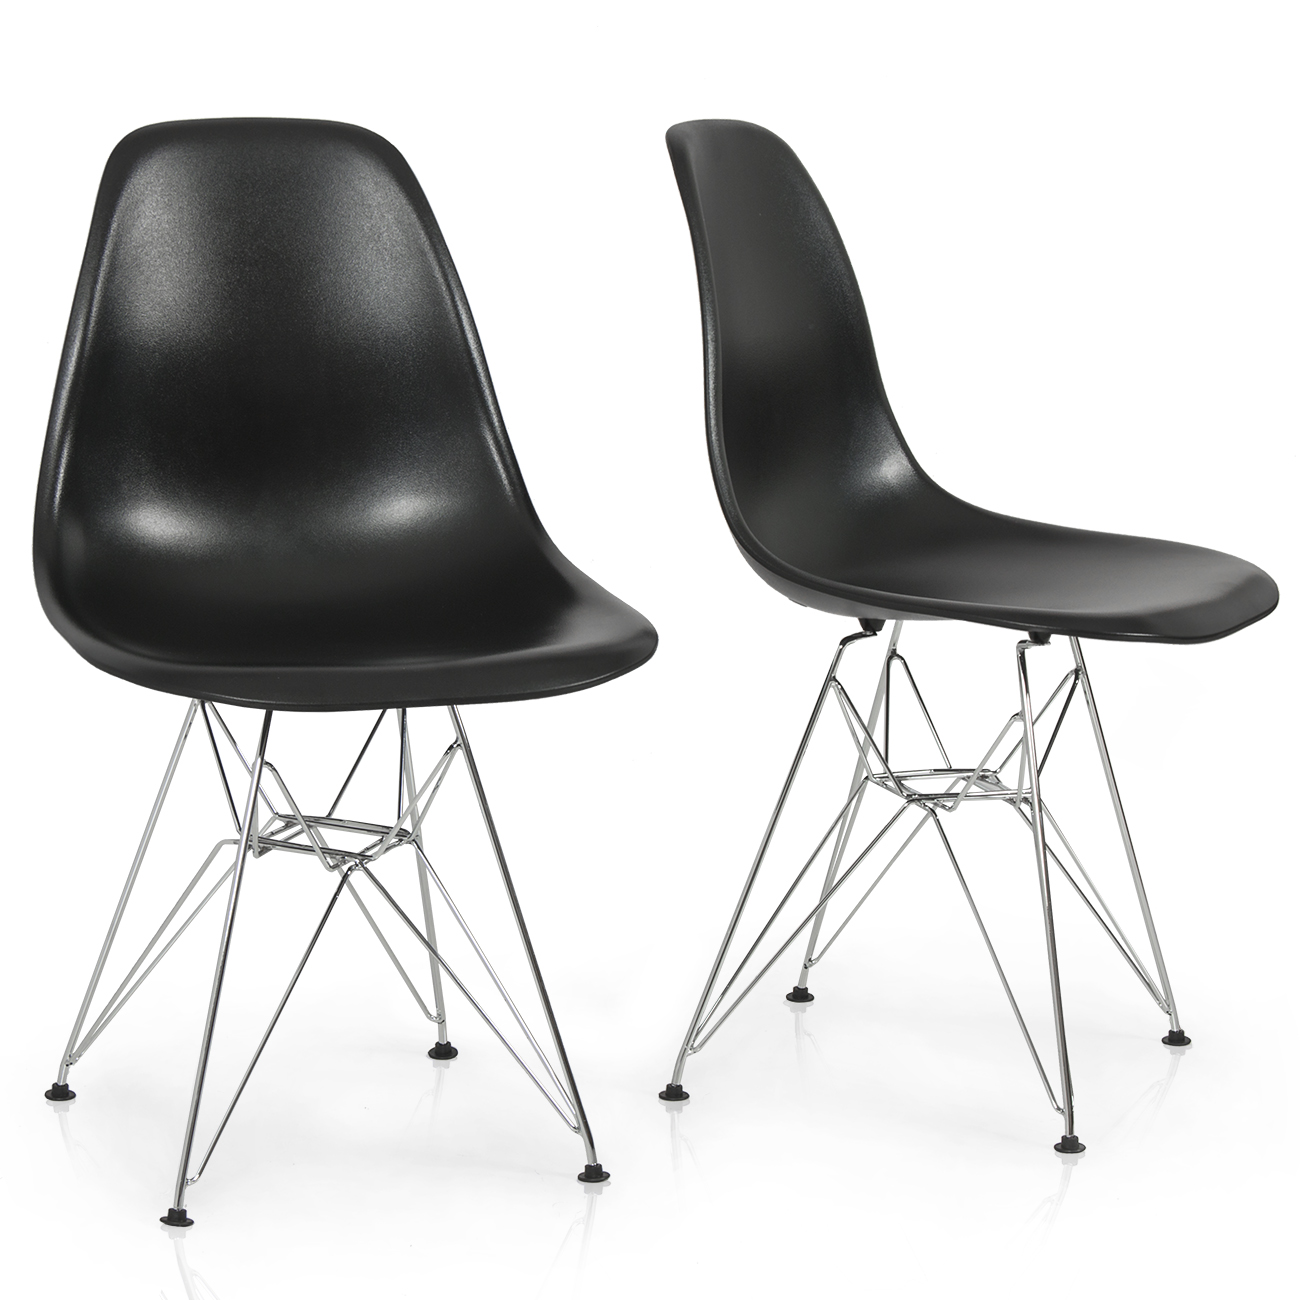 Modern plastic chairs - 2x Style Dsw Side Chair Molded Abs Plastic Chairs Wire Base Black